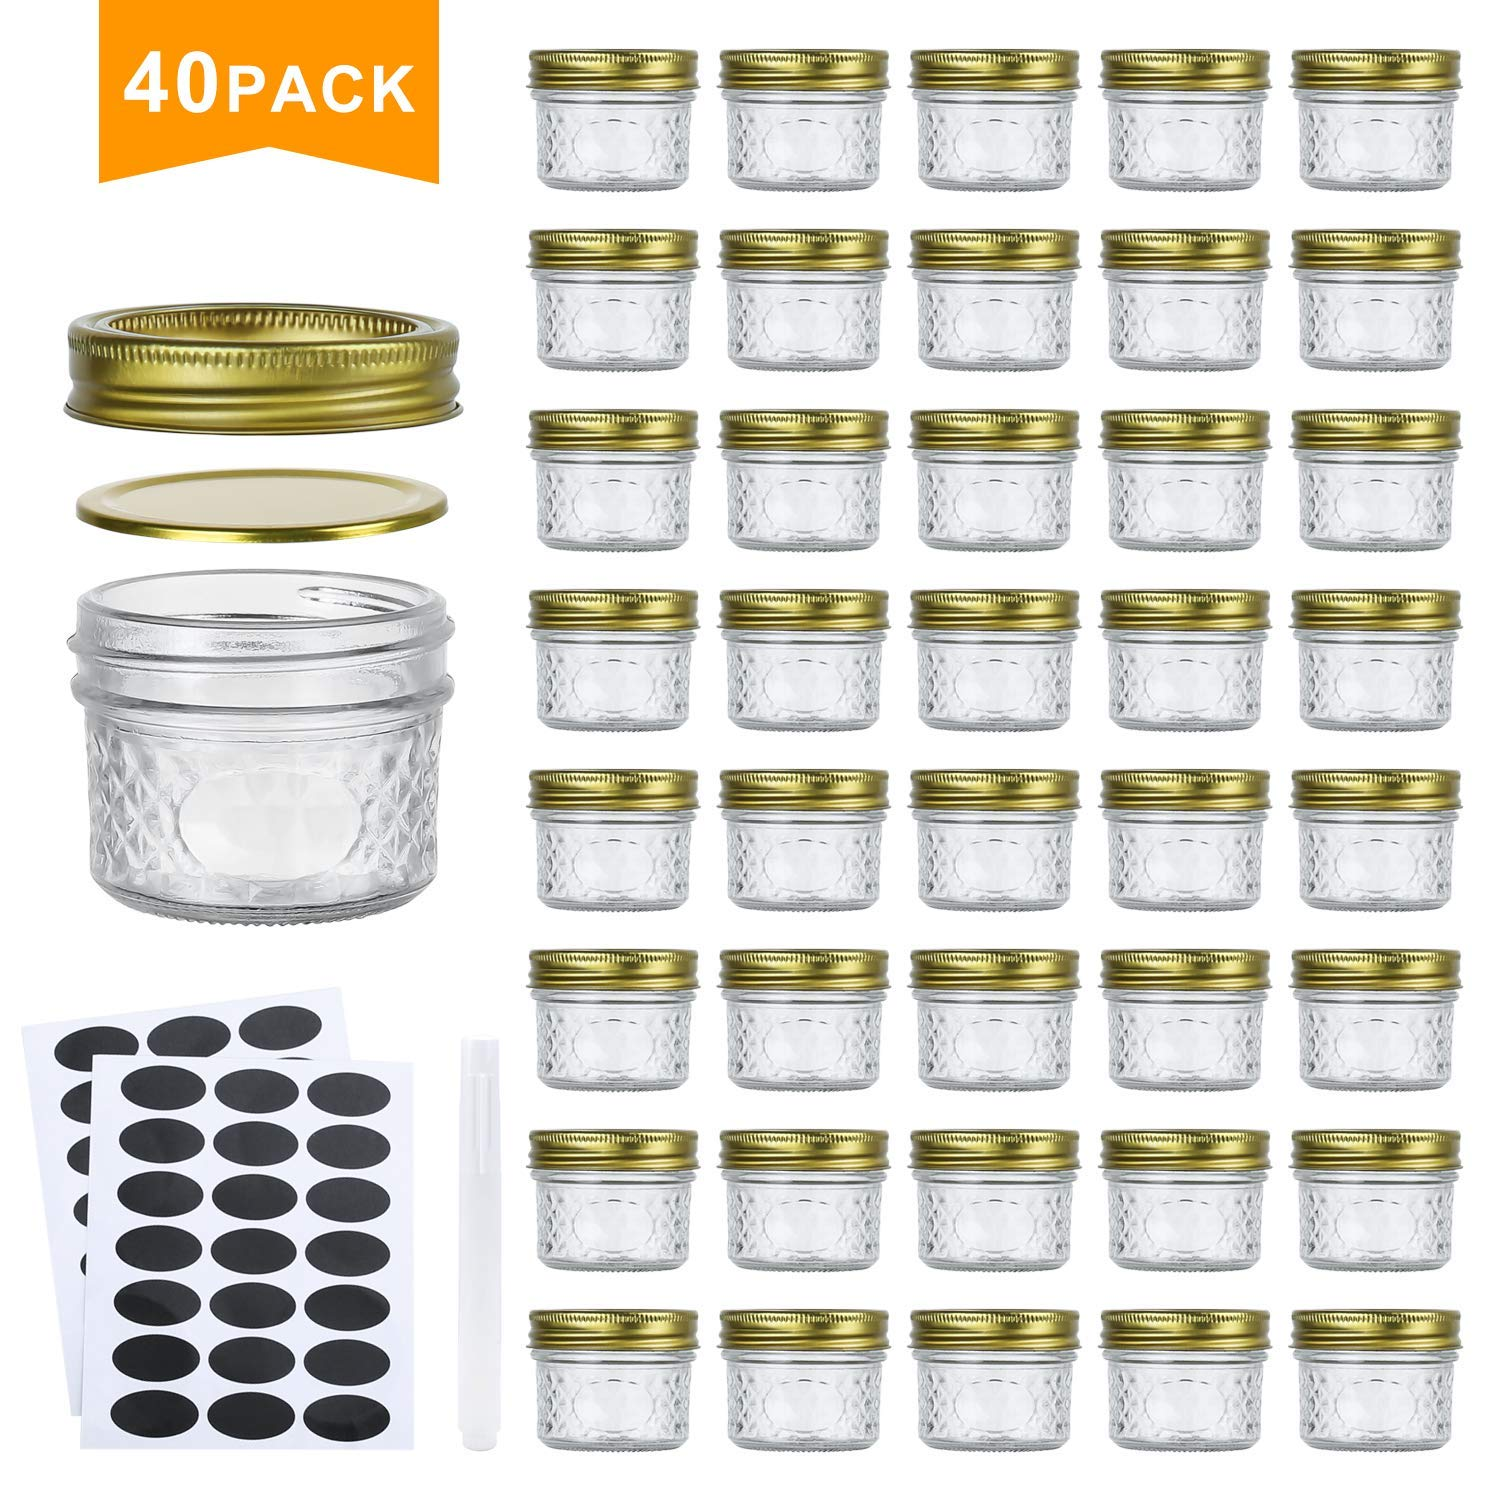 Encheng 4 oz Glass Jars With Lids And Bands,Small Canning Jars For Caviar,Herb,Jelly,Jams,Mini Wide Mouth Mason Jars For Kitchen Storage Preserving Food And Party Favors 40 Pack ... by Encheng (Image #1)